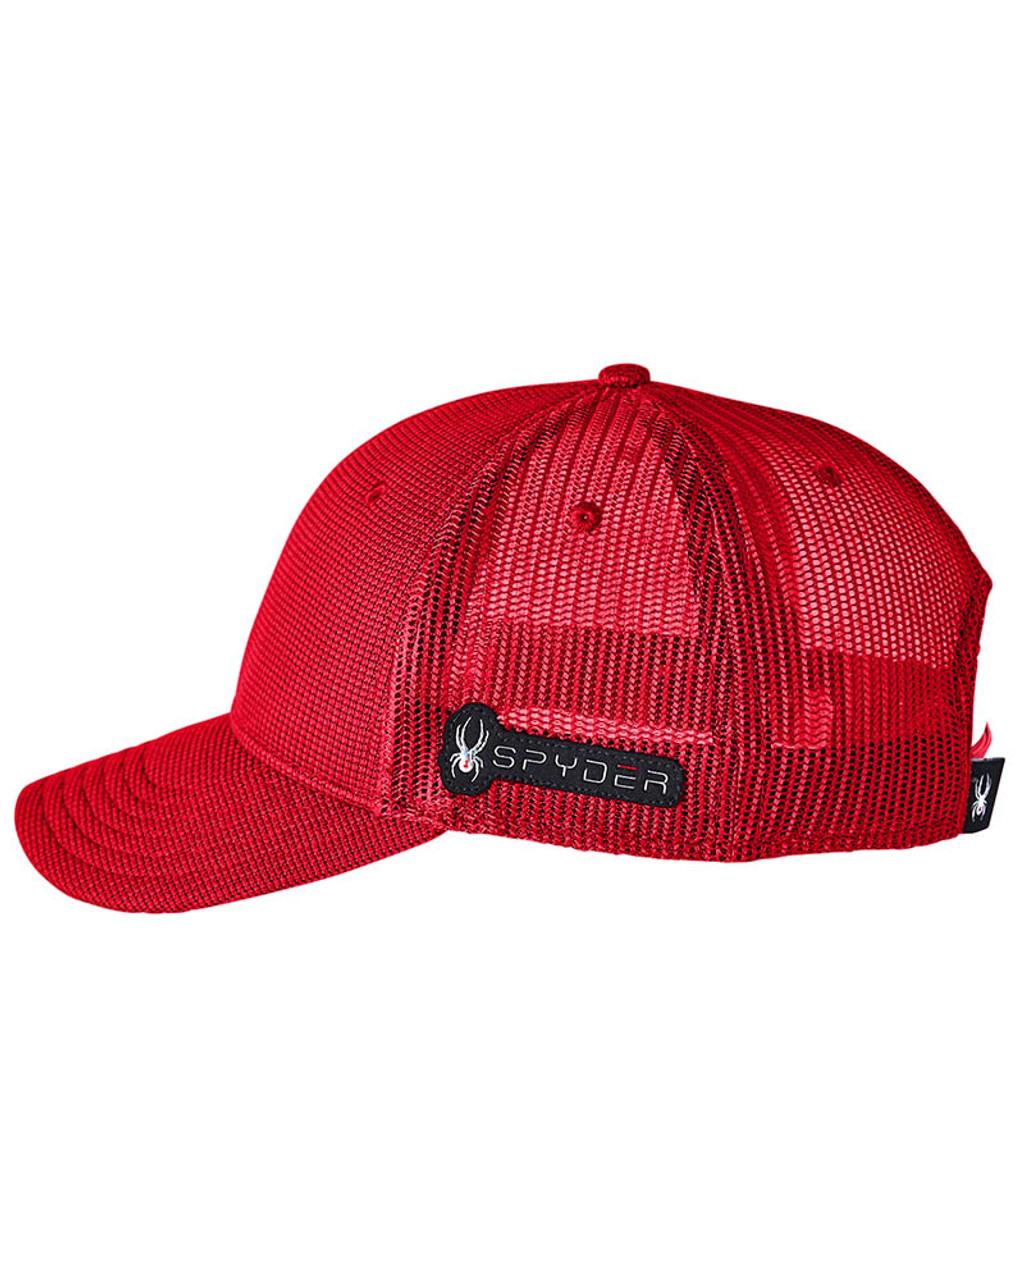 Red - SH16791 Spyder Adult Constant Sweater Trucker Cap   BlankClothing.ca